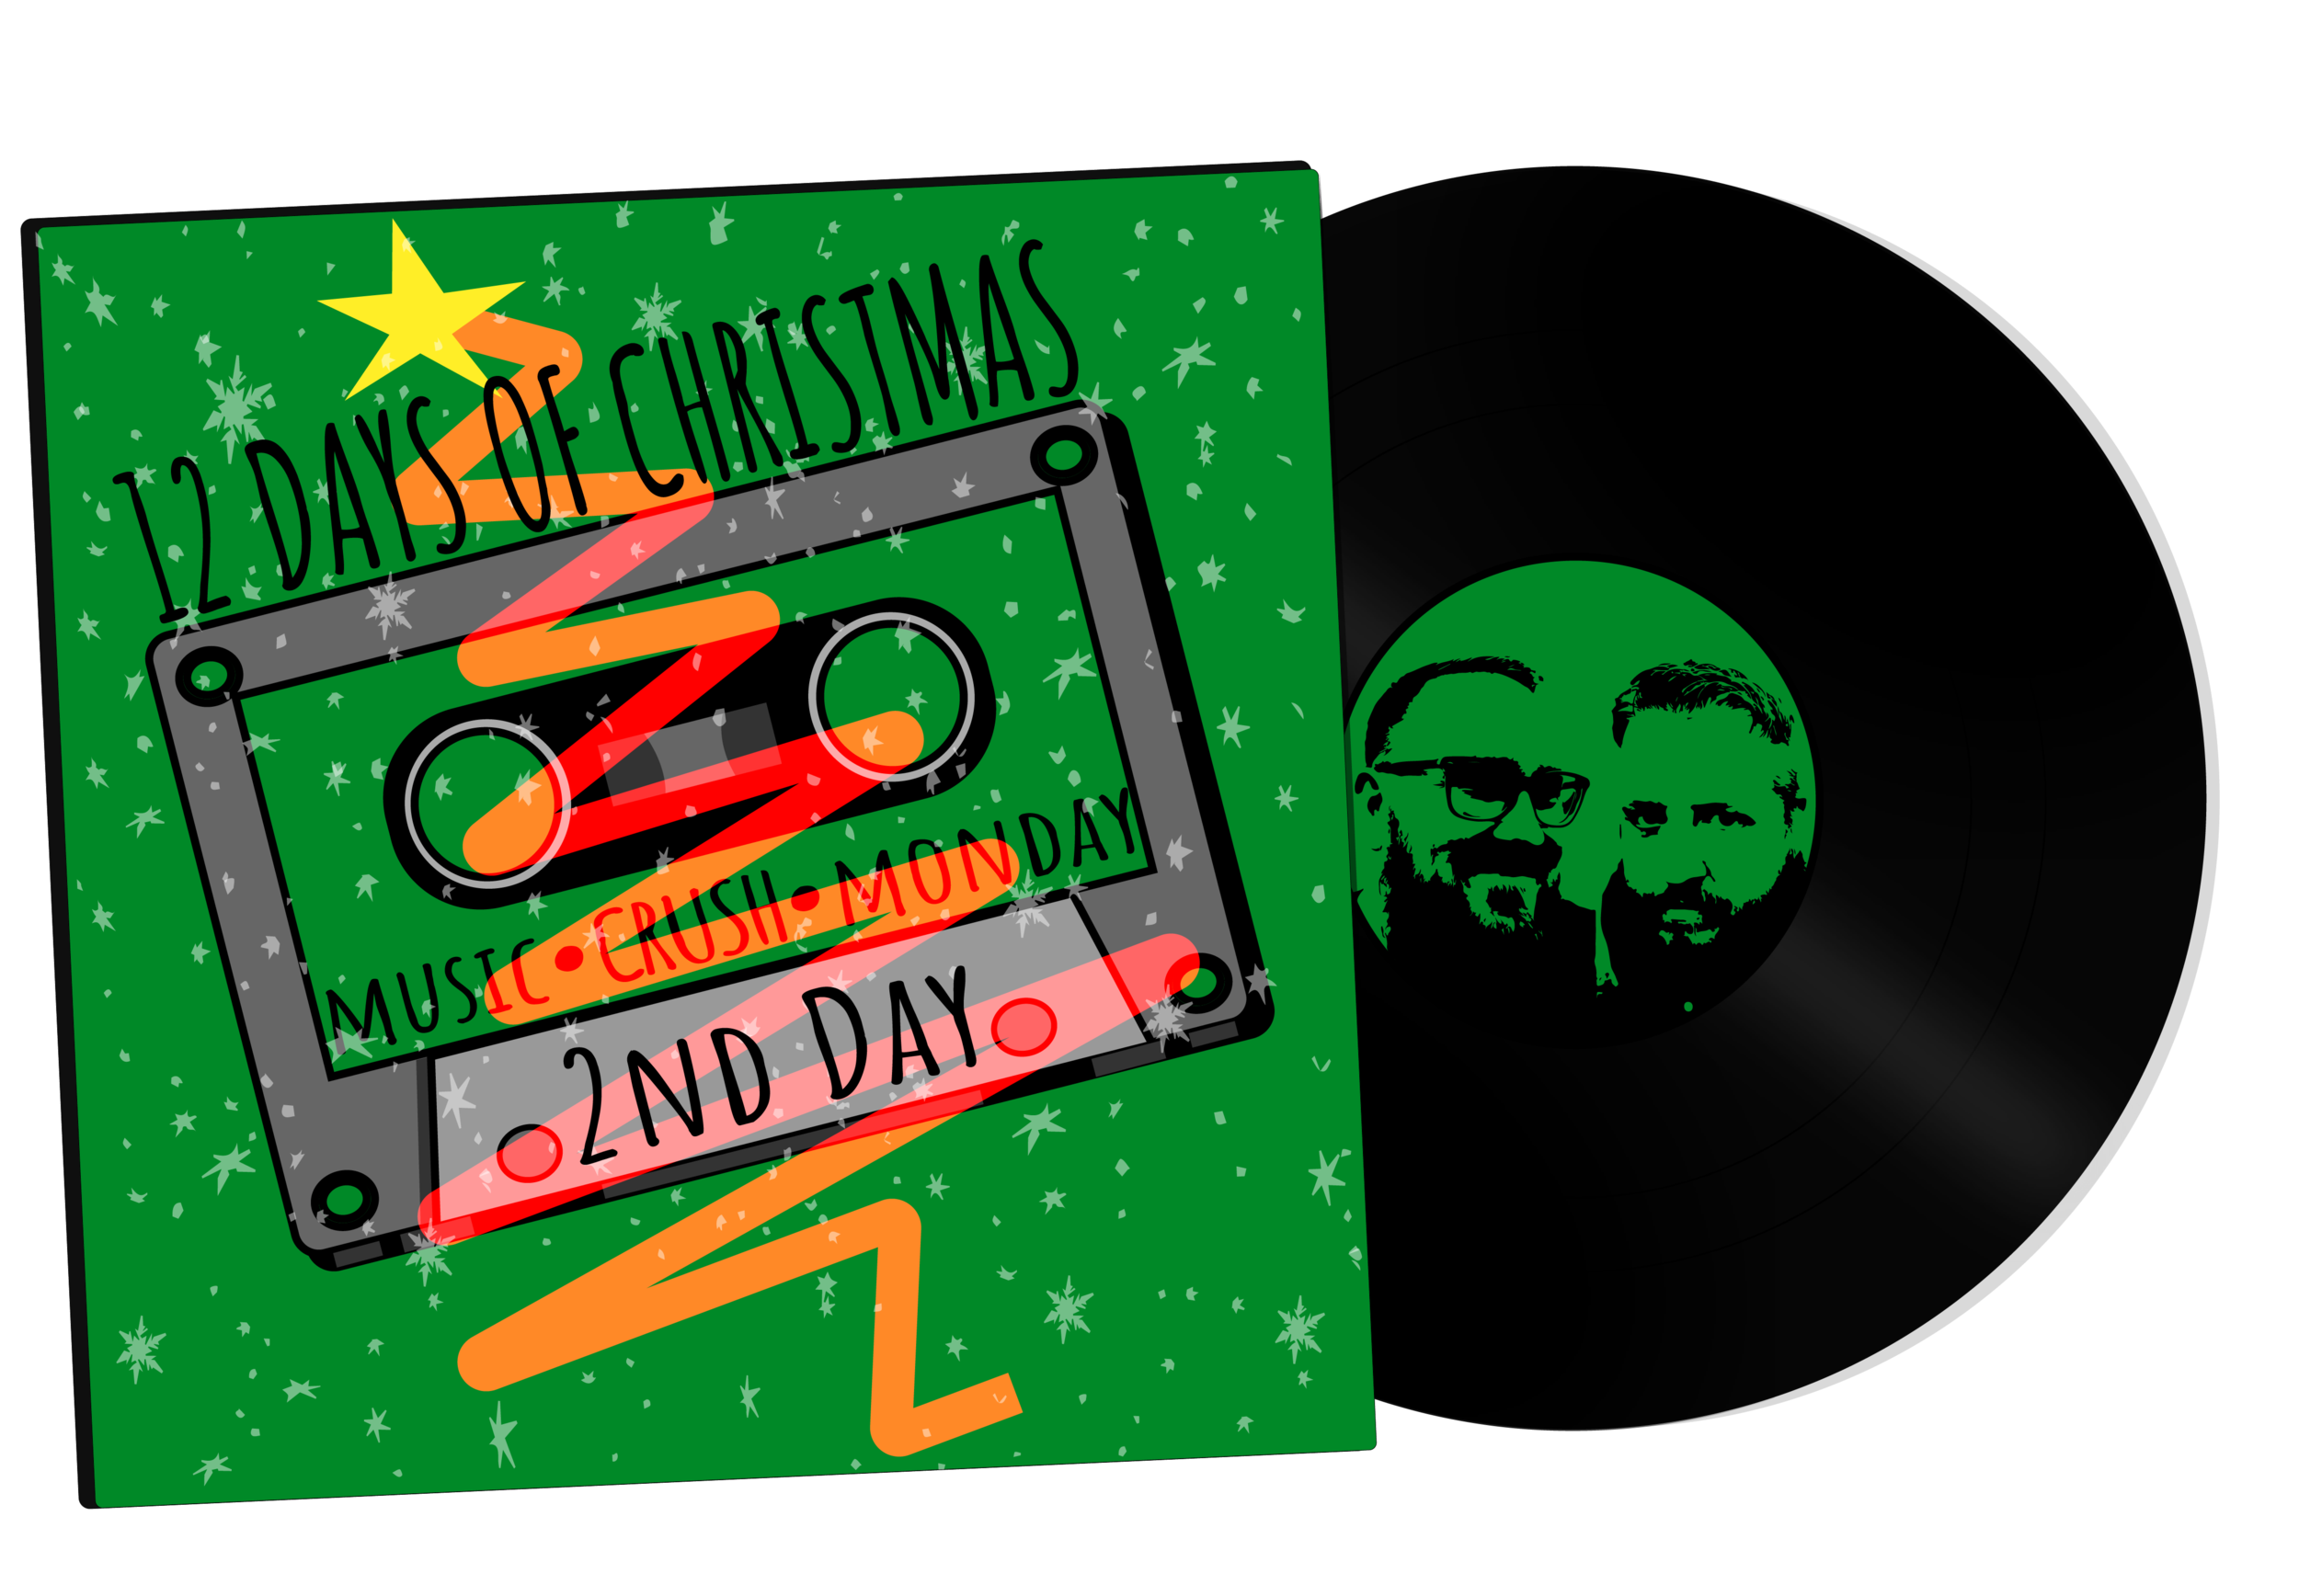 Second Day Of Christmas.039 2 Second Day Of Christmas Music Crush Monday